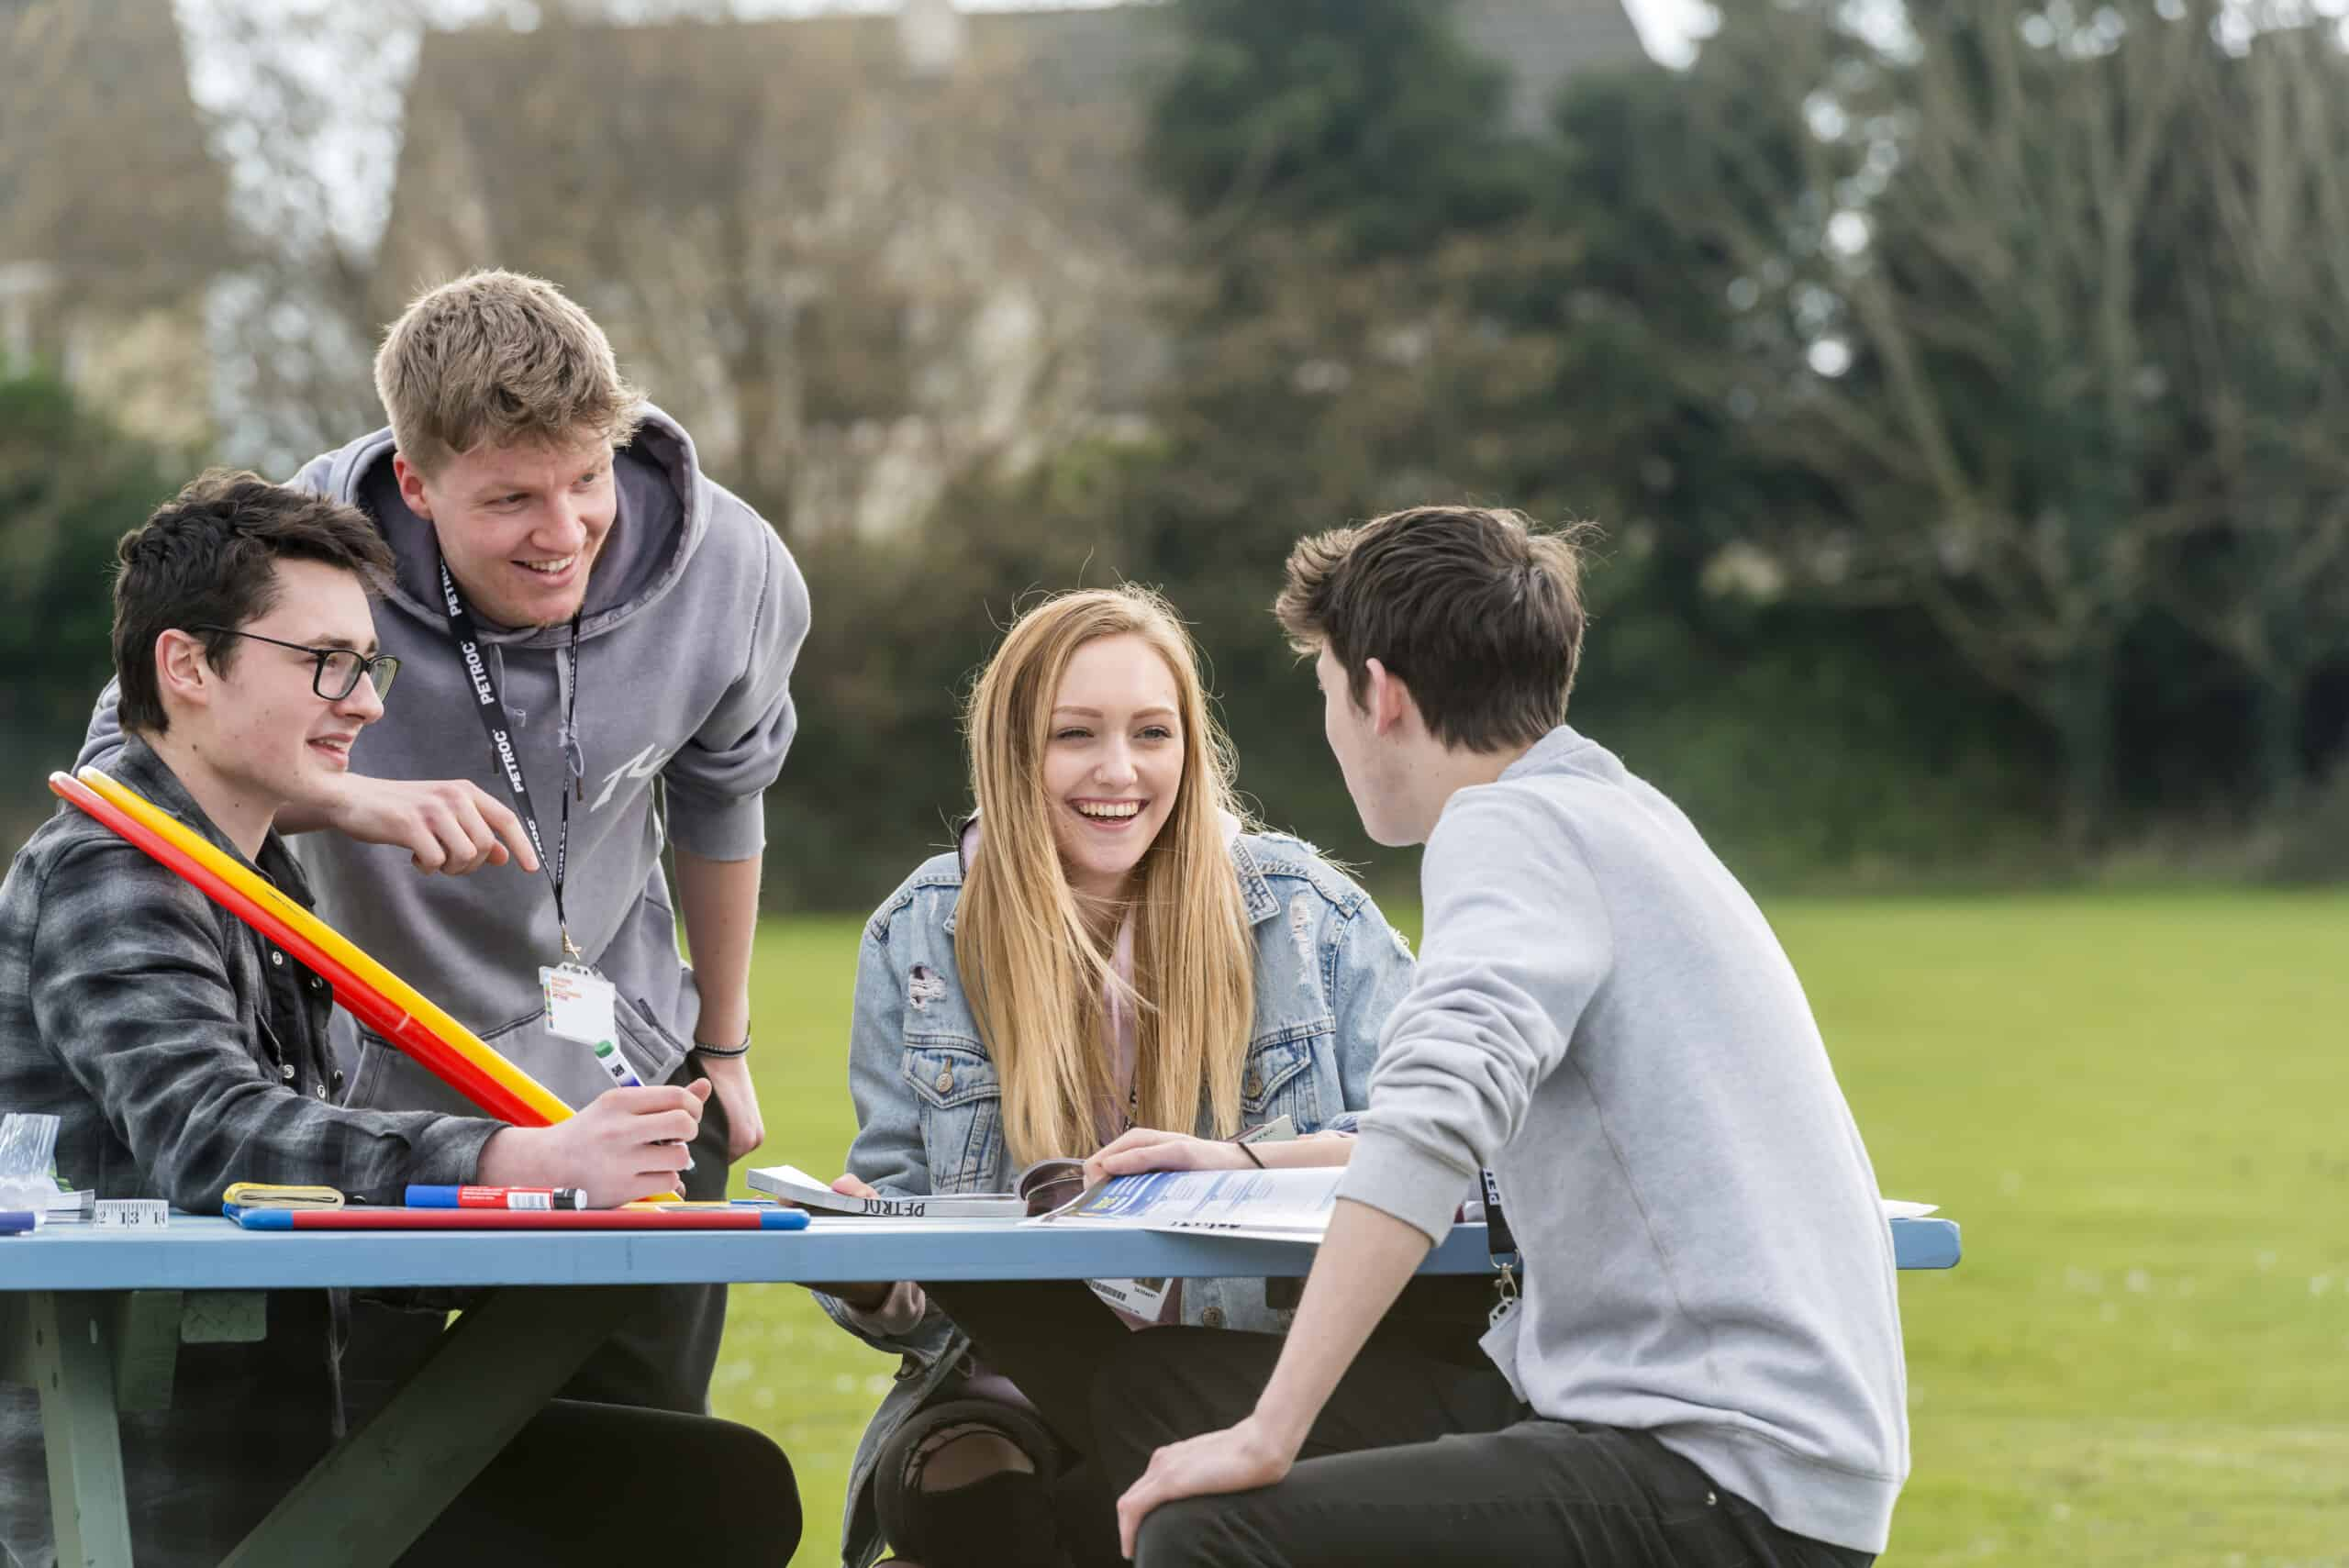 Photo by Guy Harrop. Pic of students at Petroc College  image copyright guy harrop info@guyharrop.com 07866 464282